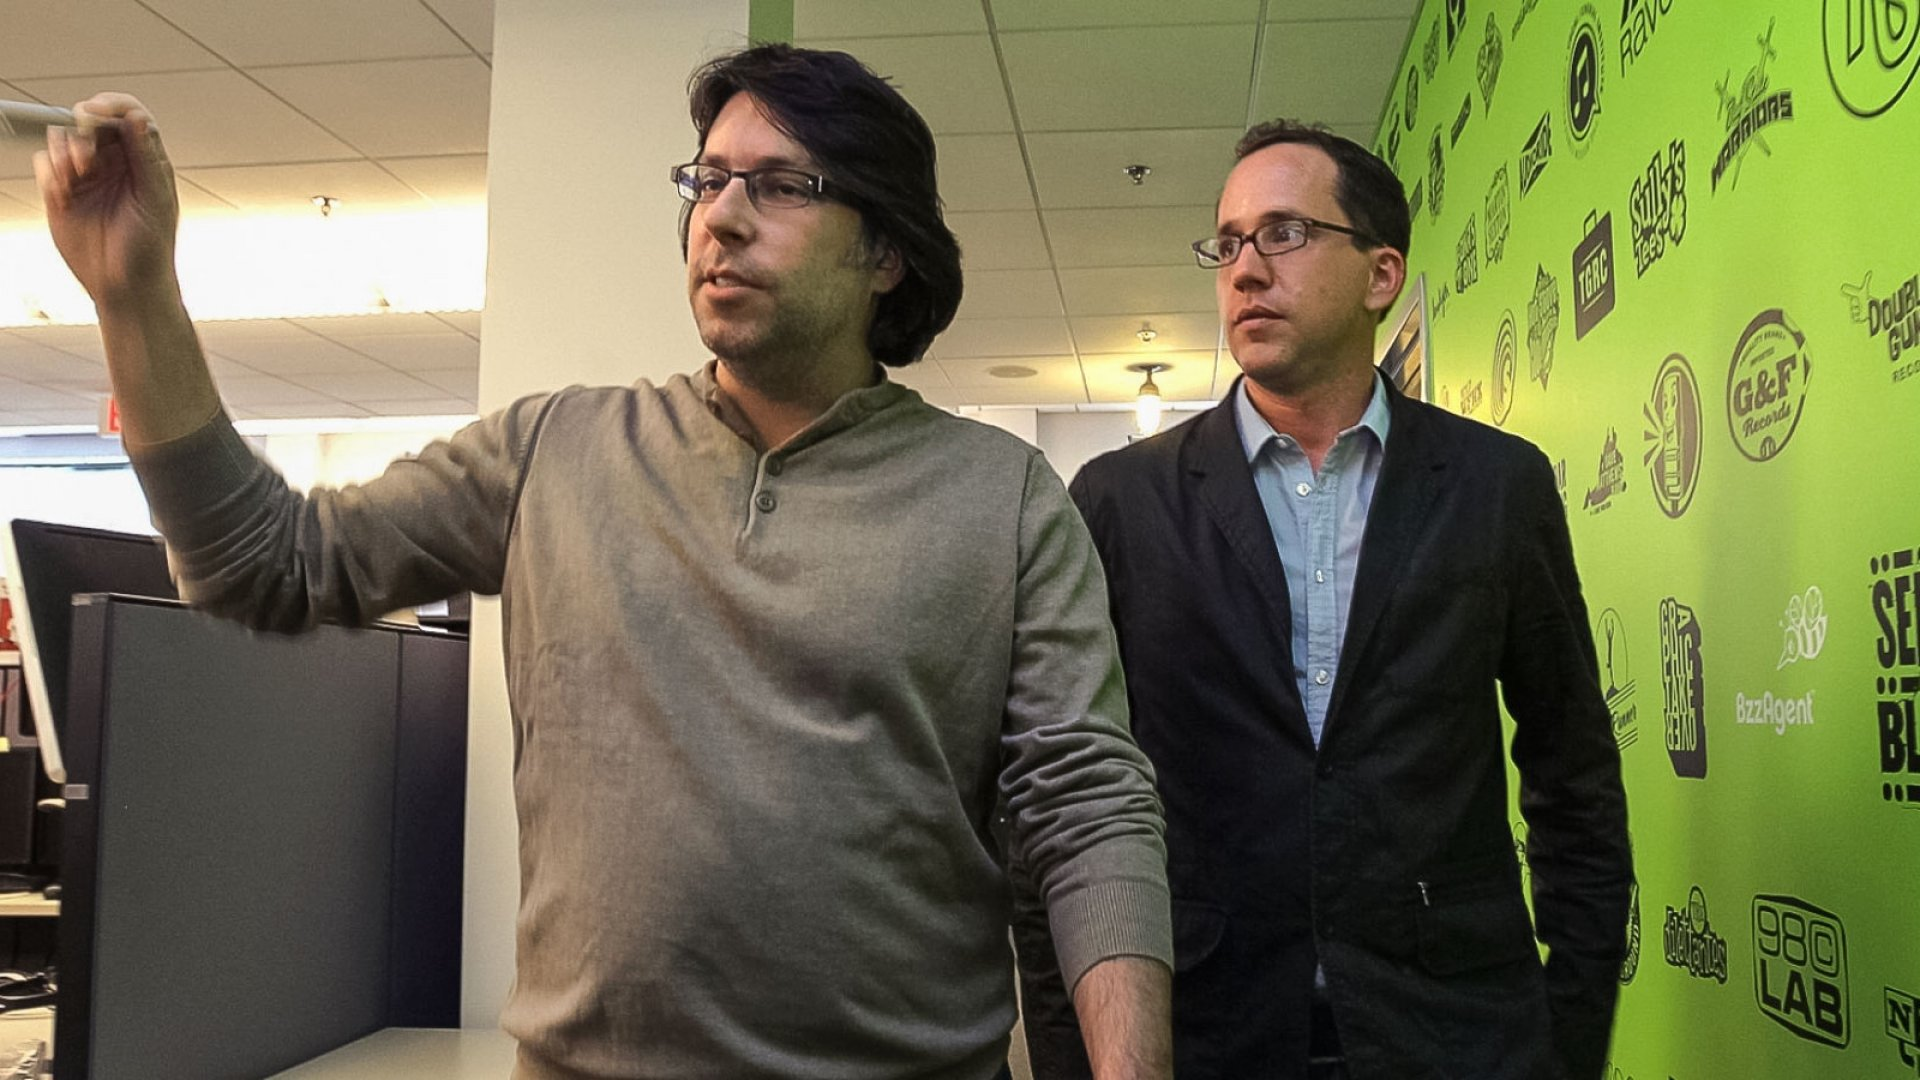 Dave Balter, at left, founder and CEO of BzzAgent takes Brian Drewes, Executive Producer of ZERO Visual Effects on a tour of BzzAgent during a meeting at his company's offices.